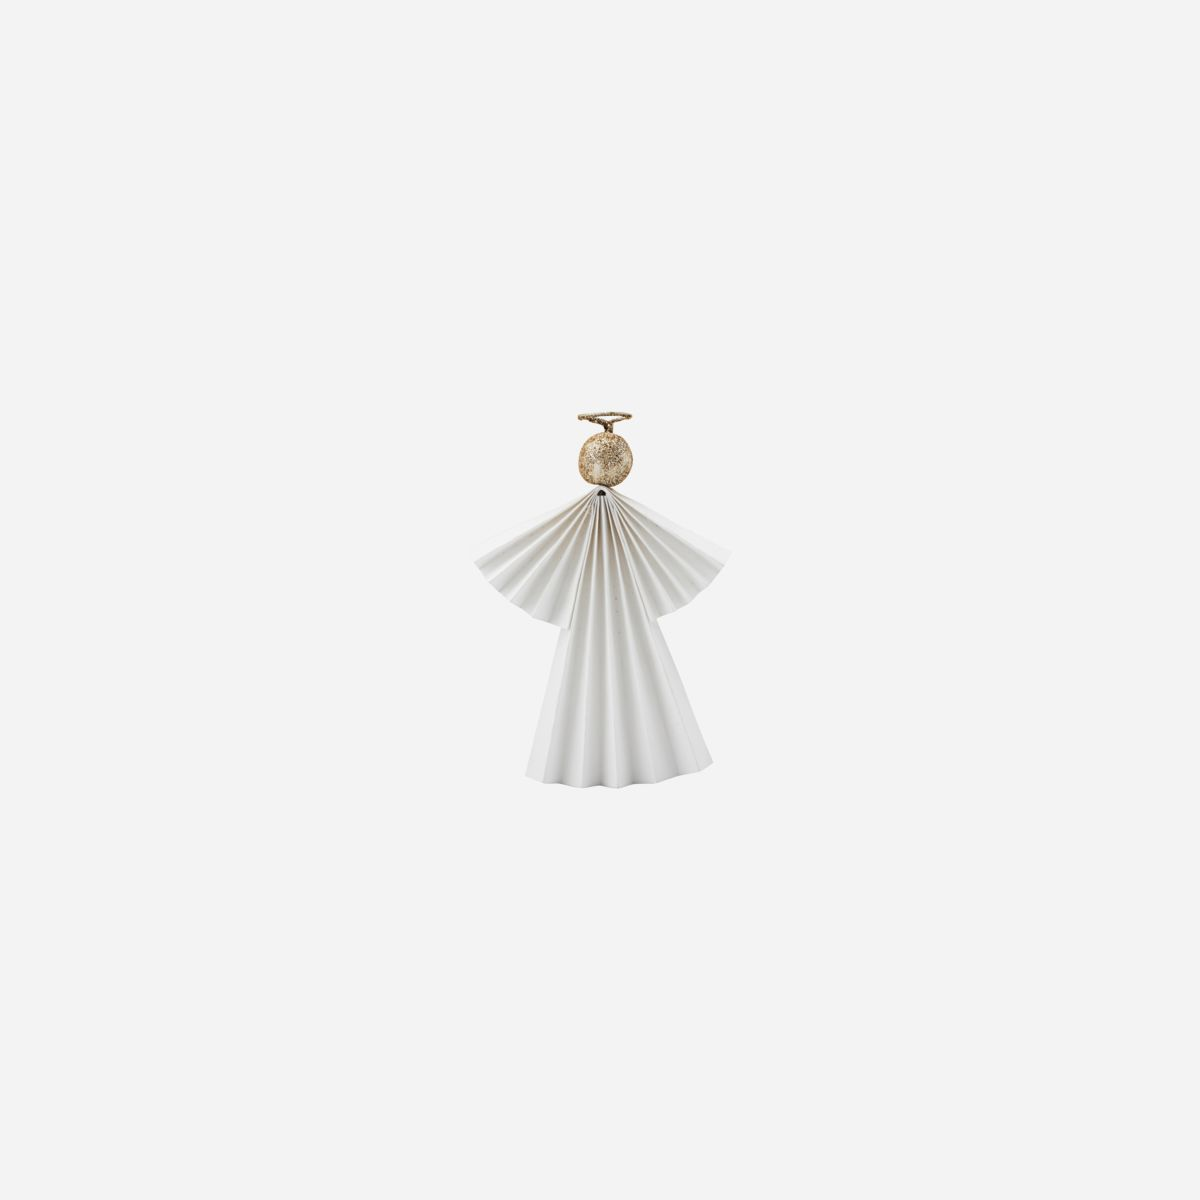 HOUSE DOCTOR ORNAMENTS ANGELS WEISS PAPIER ENGEL